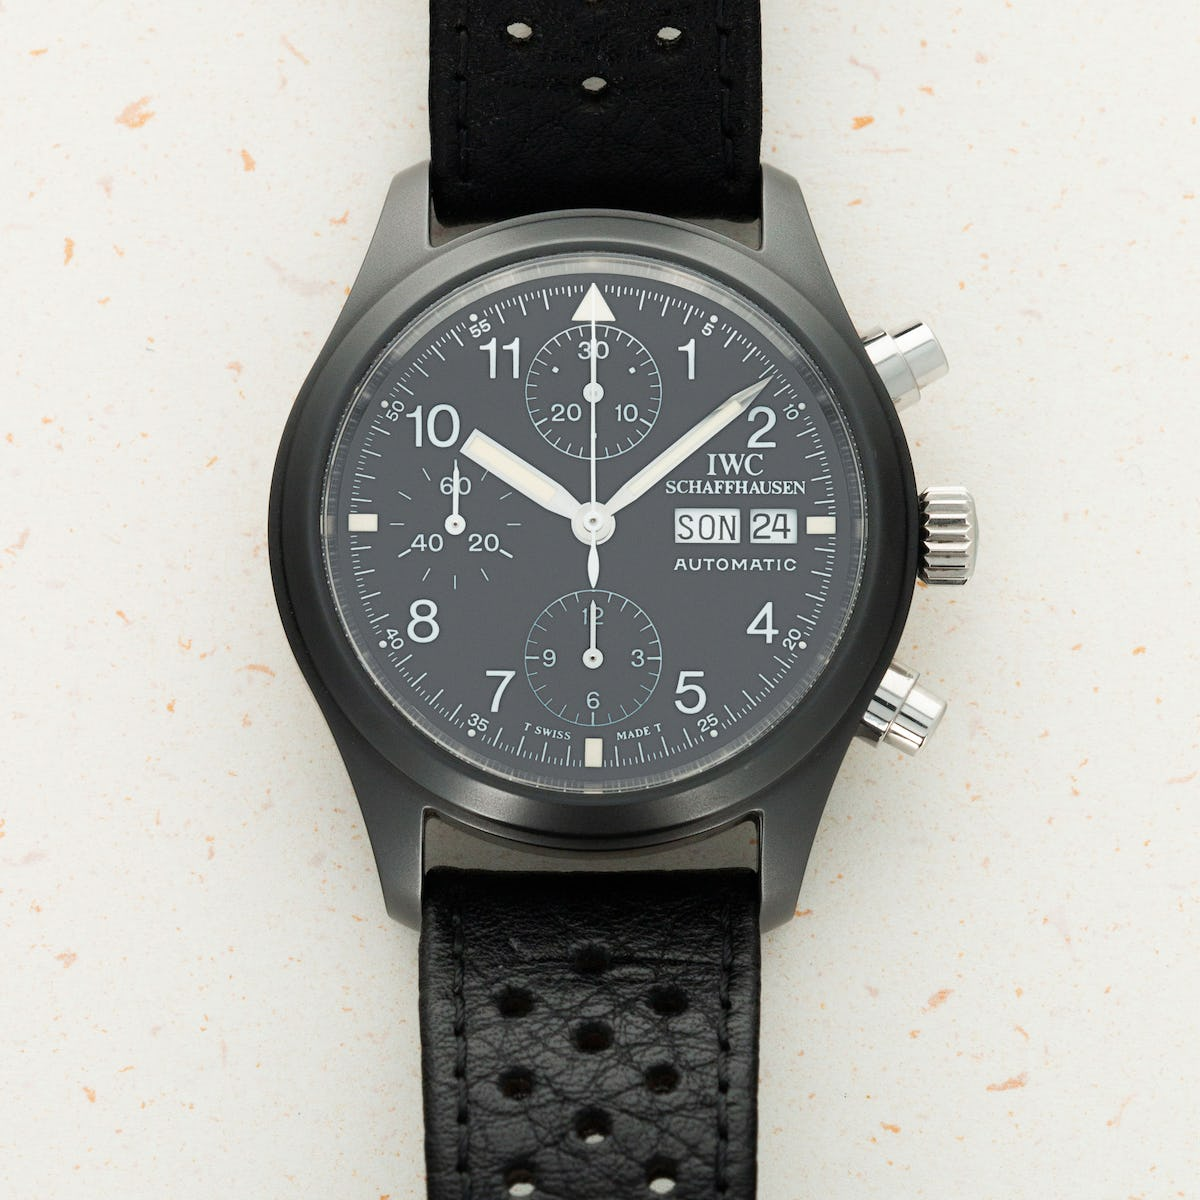 Thumbnail for IWC Ceramic Flieger Chronograph 3705